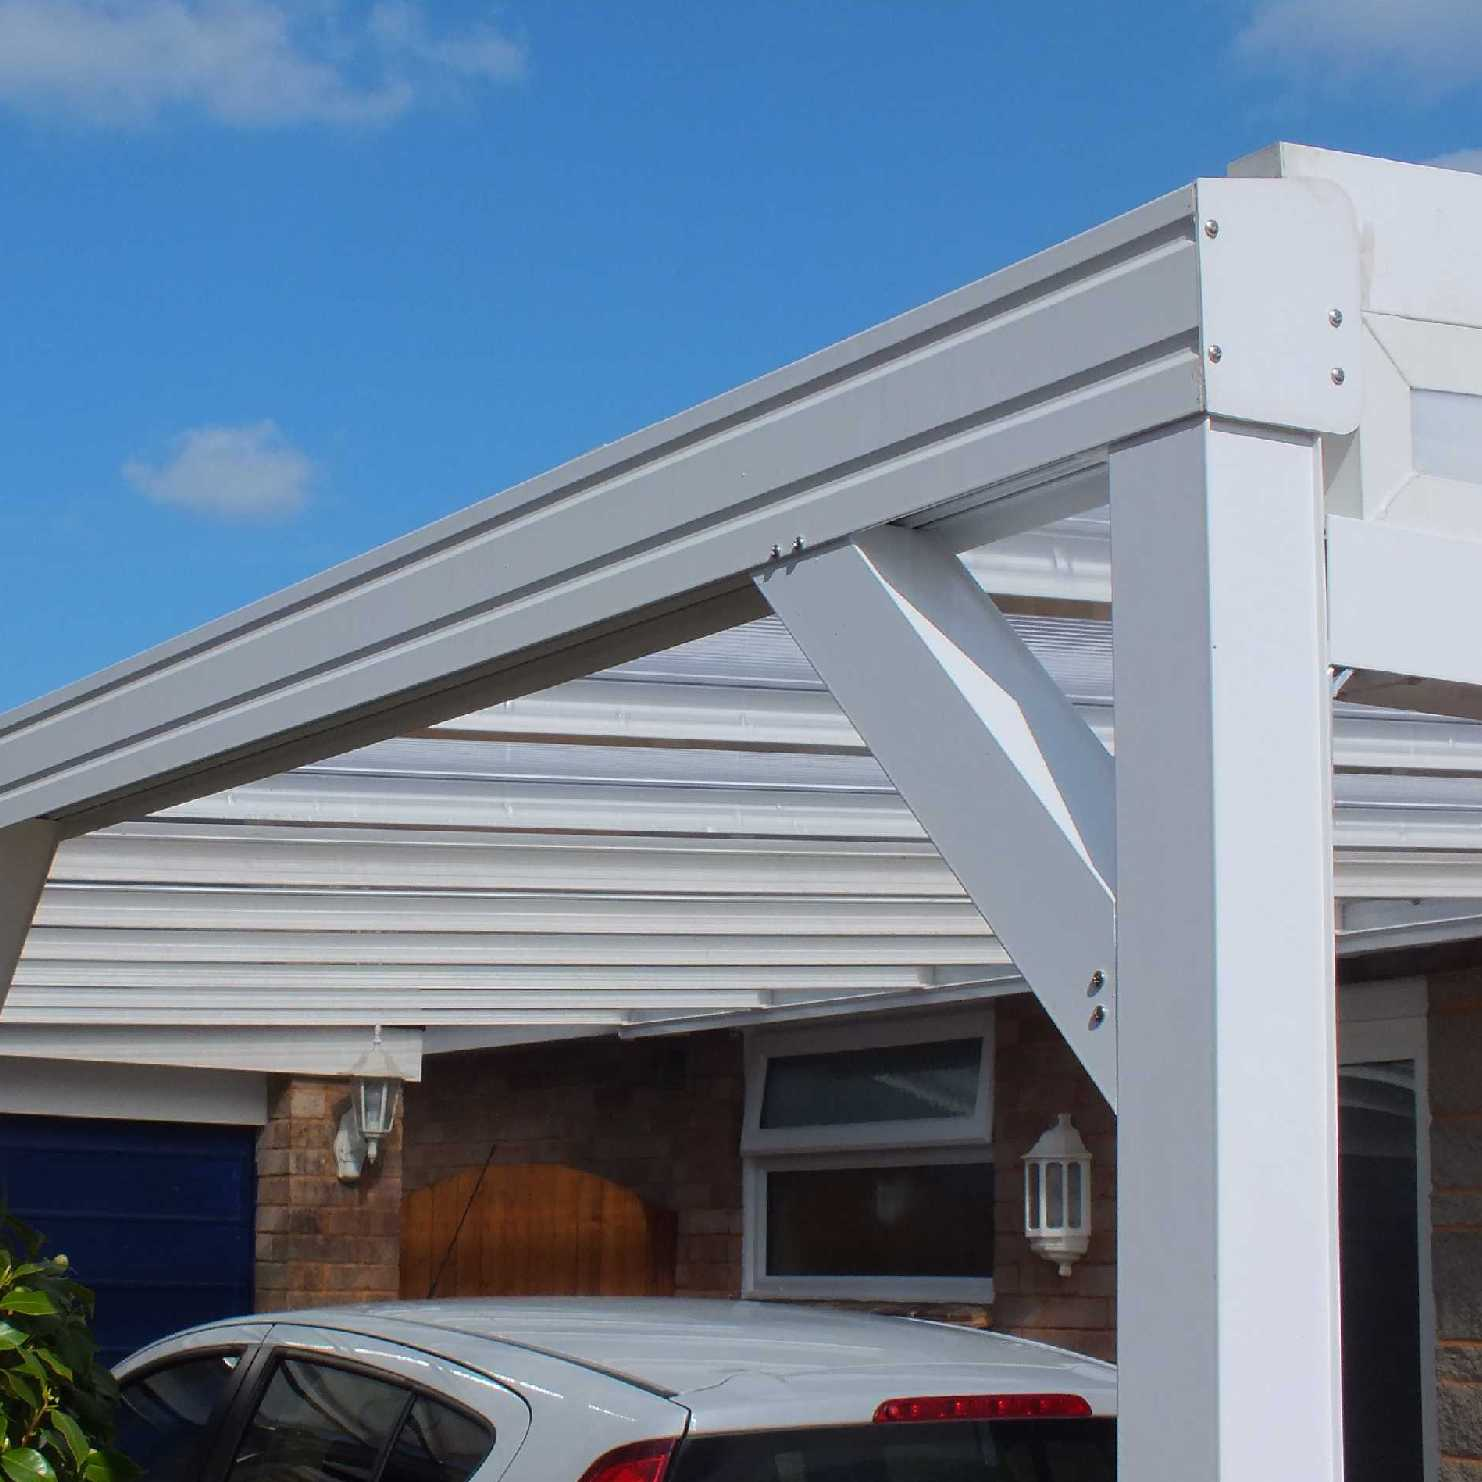 Great deals on Omega Smart Lean-To Canopy with 16mm Polycarbonate Glazing - 4.2m (W) x 4.0m (P), (3) Supporting Posts